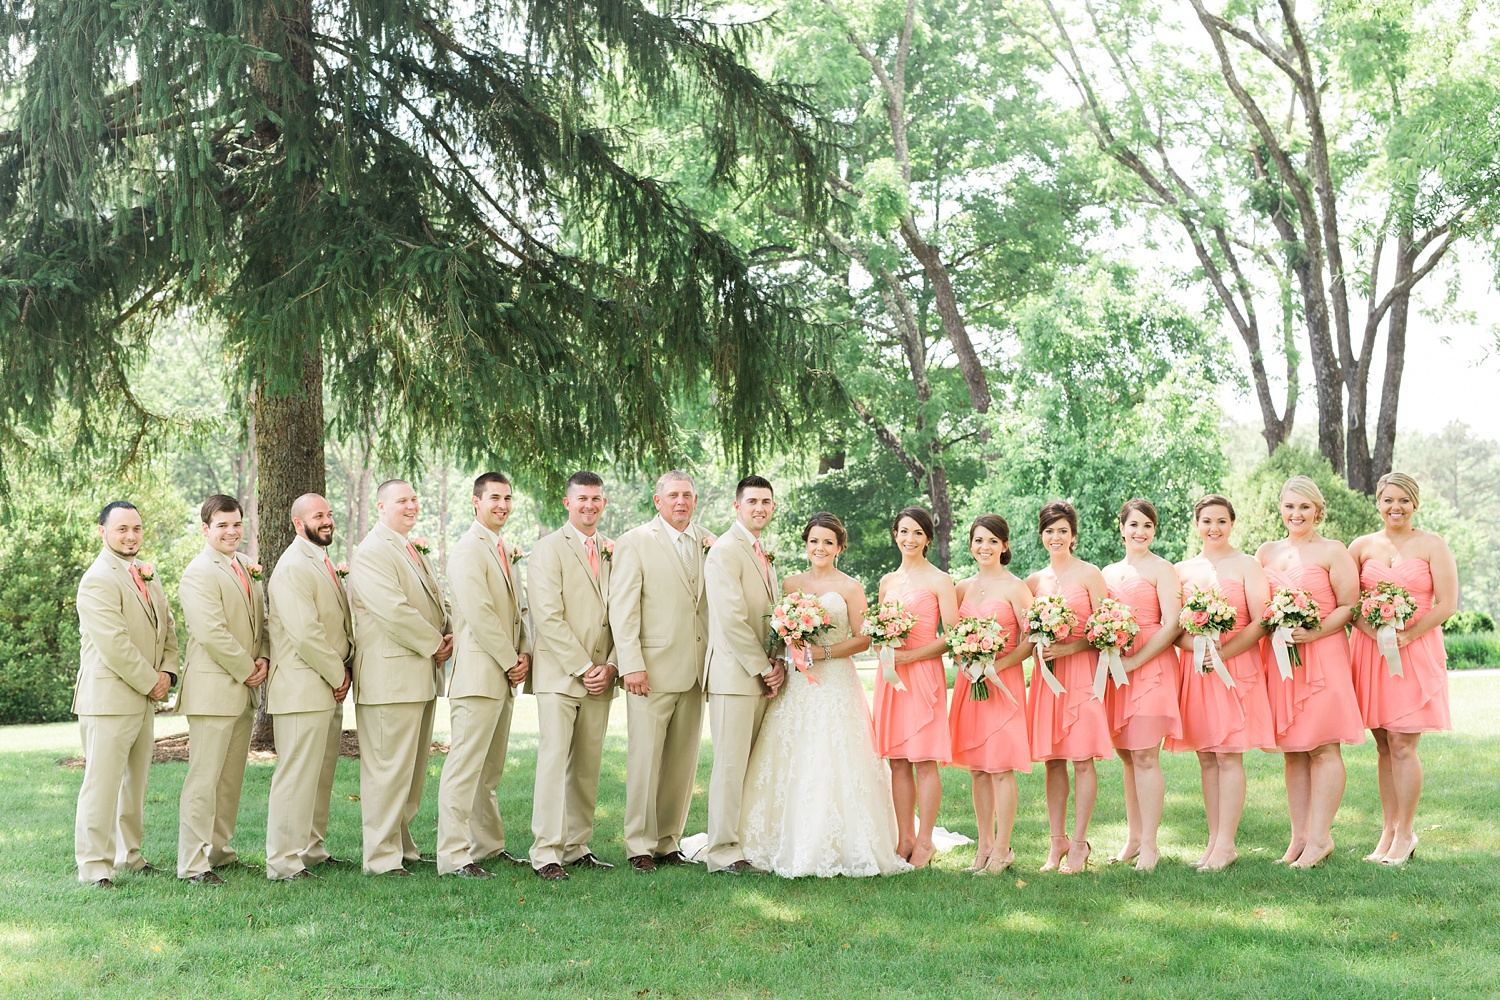 wedding party poses on a green lawn for their group portrait